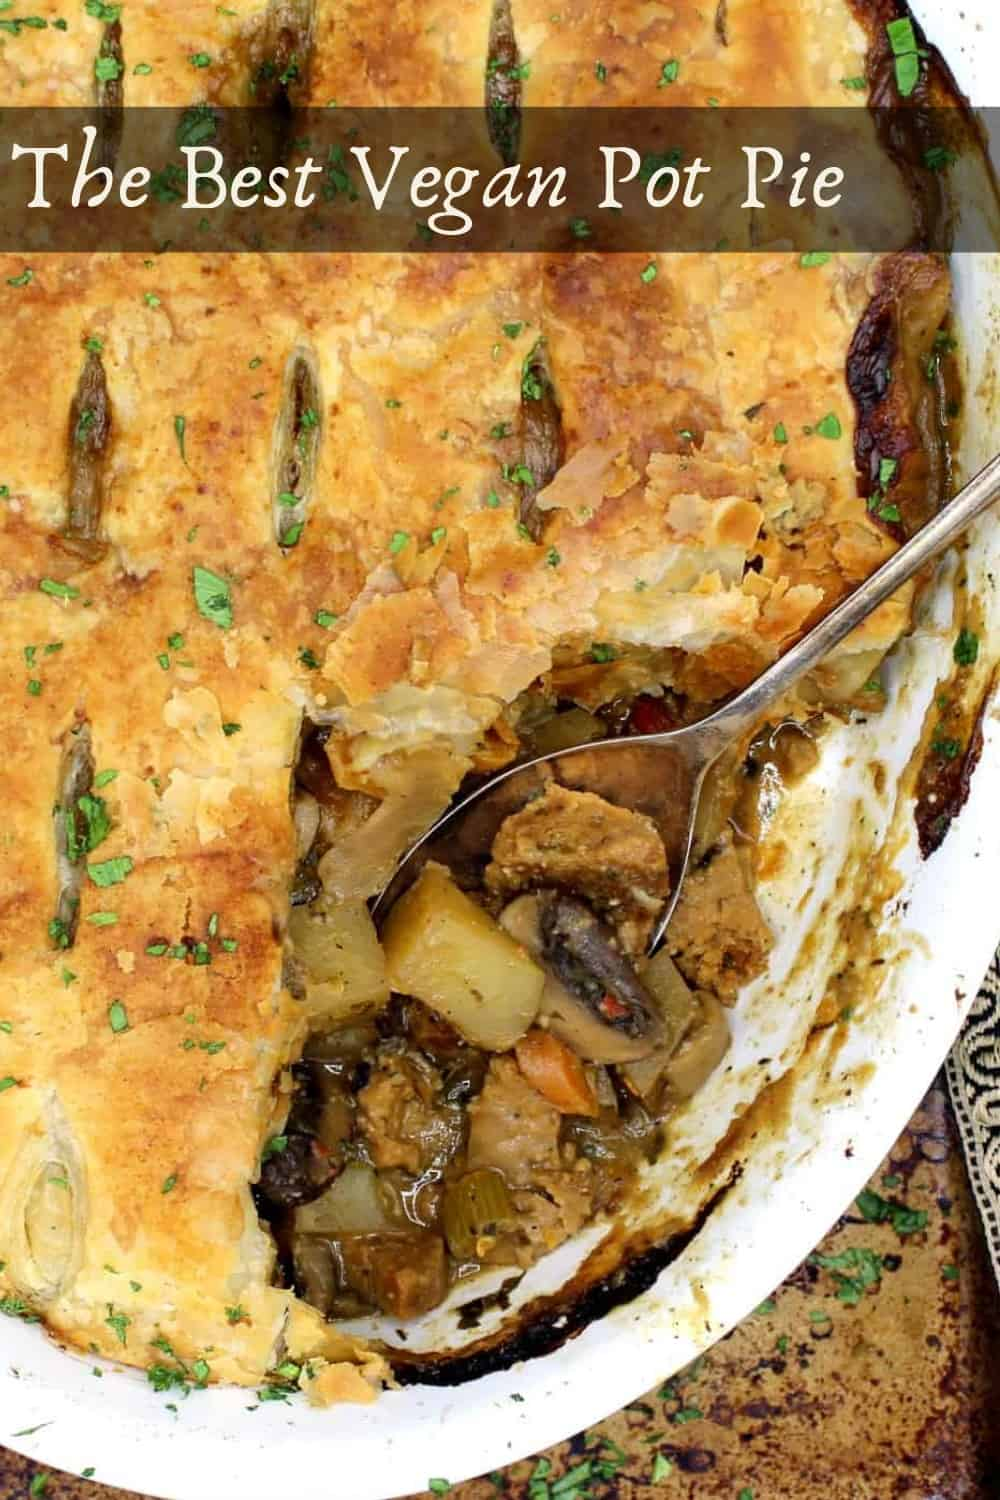 The best vegan pot pie with a crackly, crispy, golden puff pastry crust and a juicy filling of potatoes, mushrooms, squash, sausage and more veggies baked in a white oval baking dish with a steel spoon.